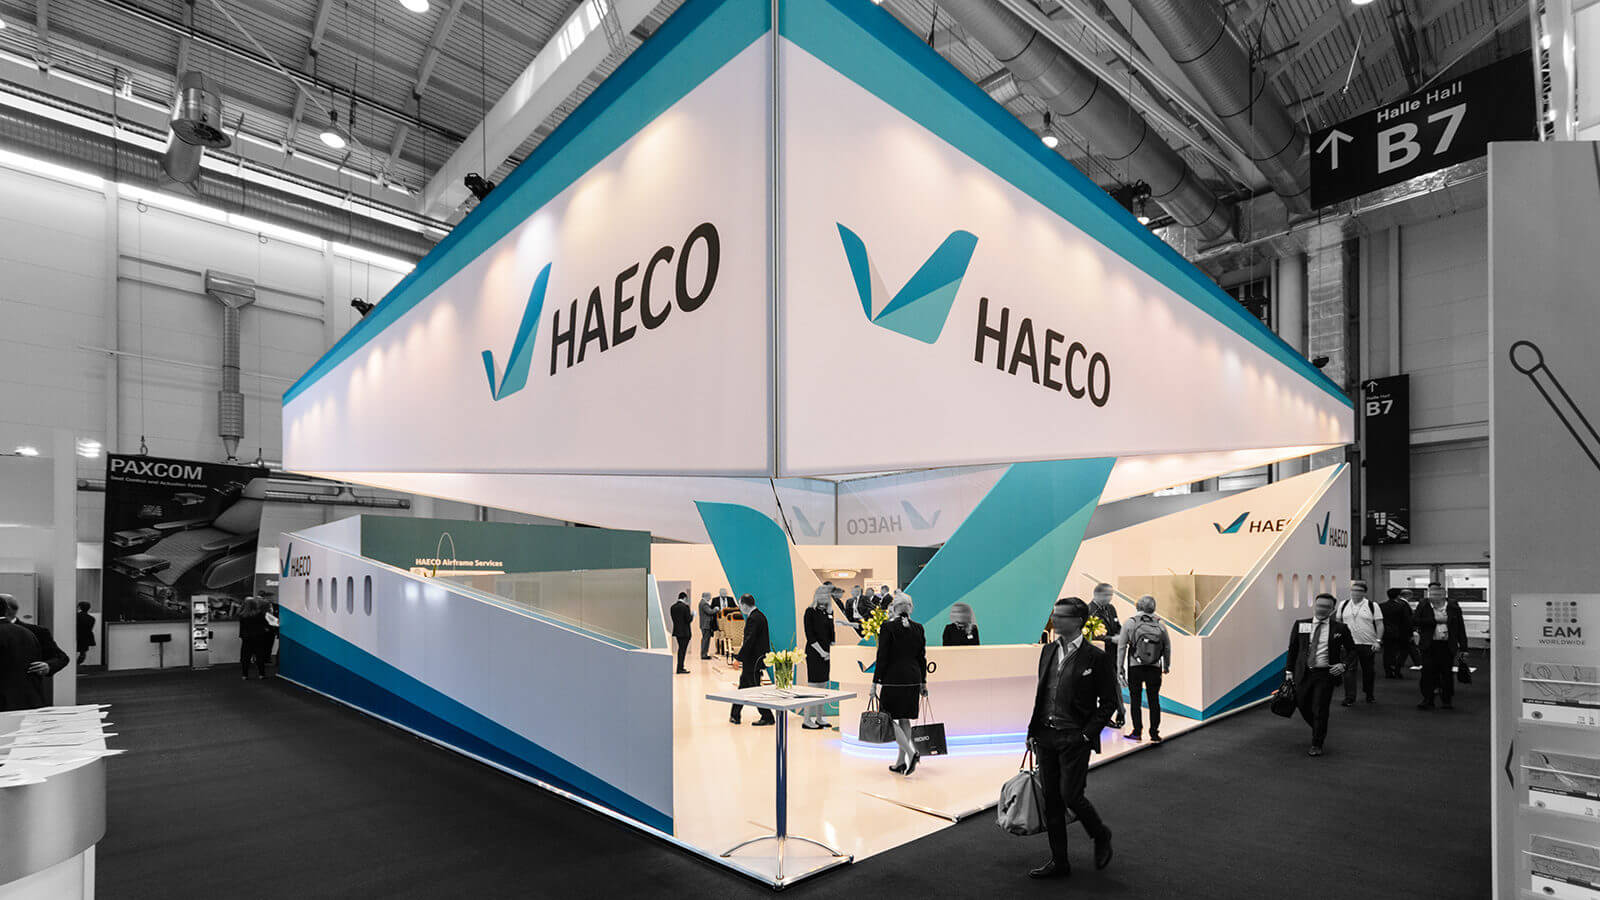 HAECO<br>264 sqm<br>Aircraft Interiors Expo